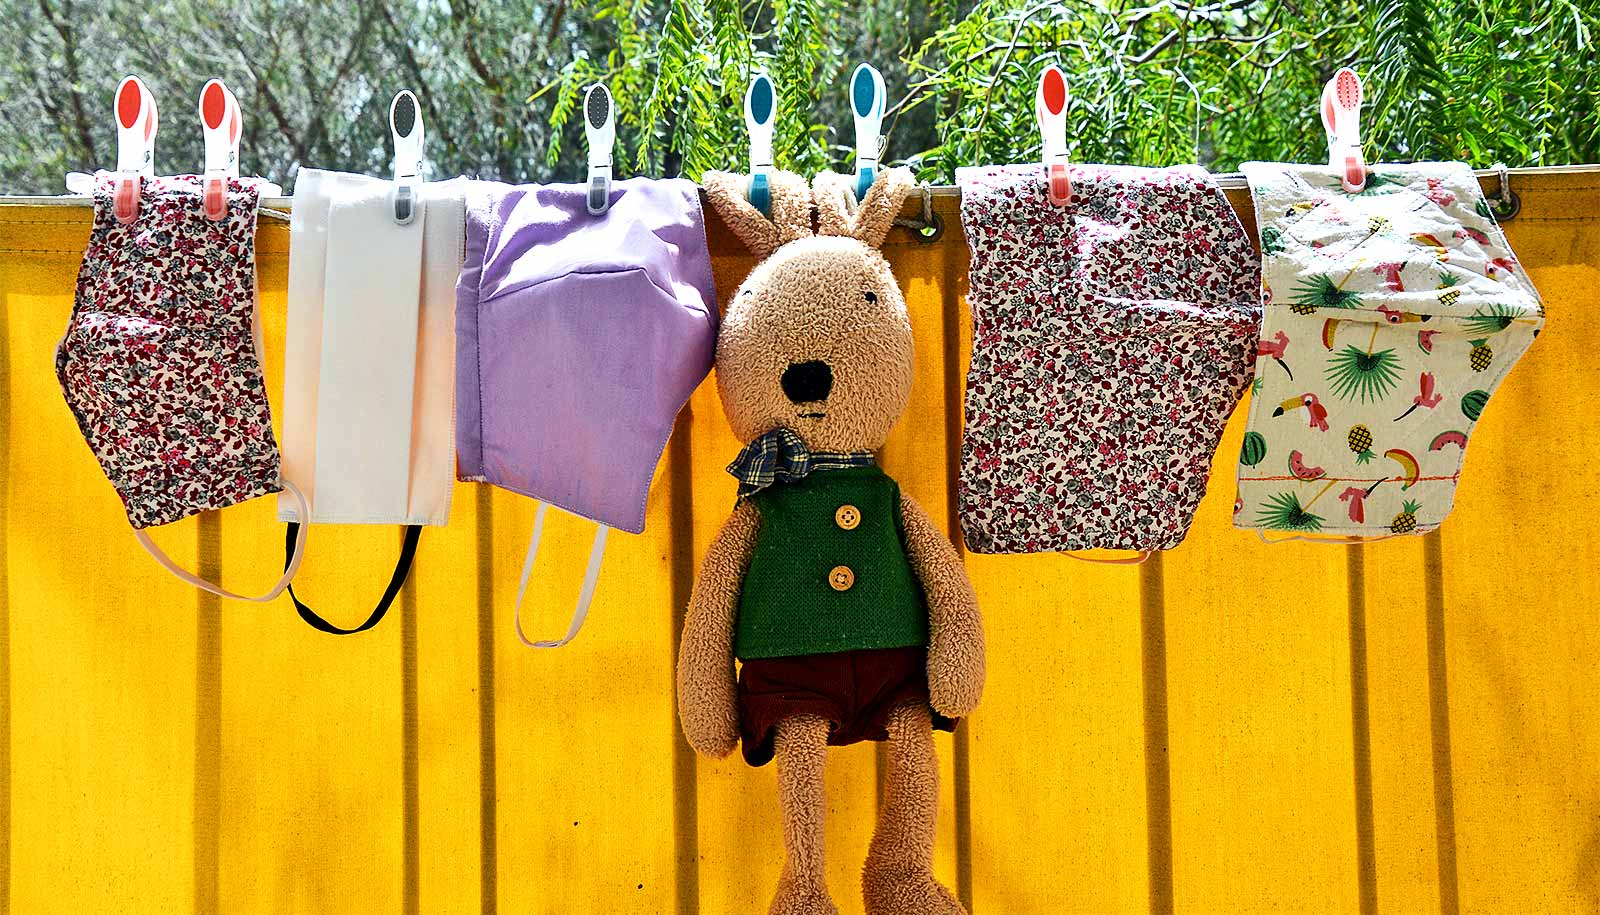 How to do your laundry and not get sick - Futurity